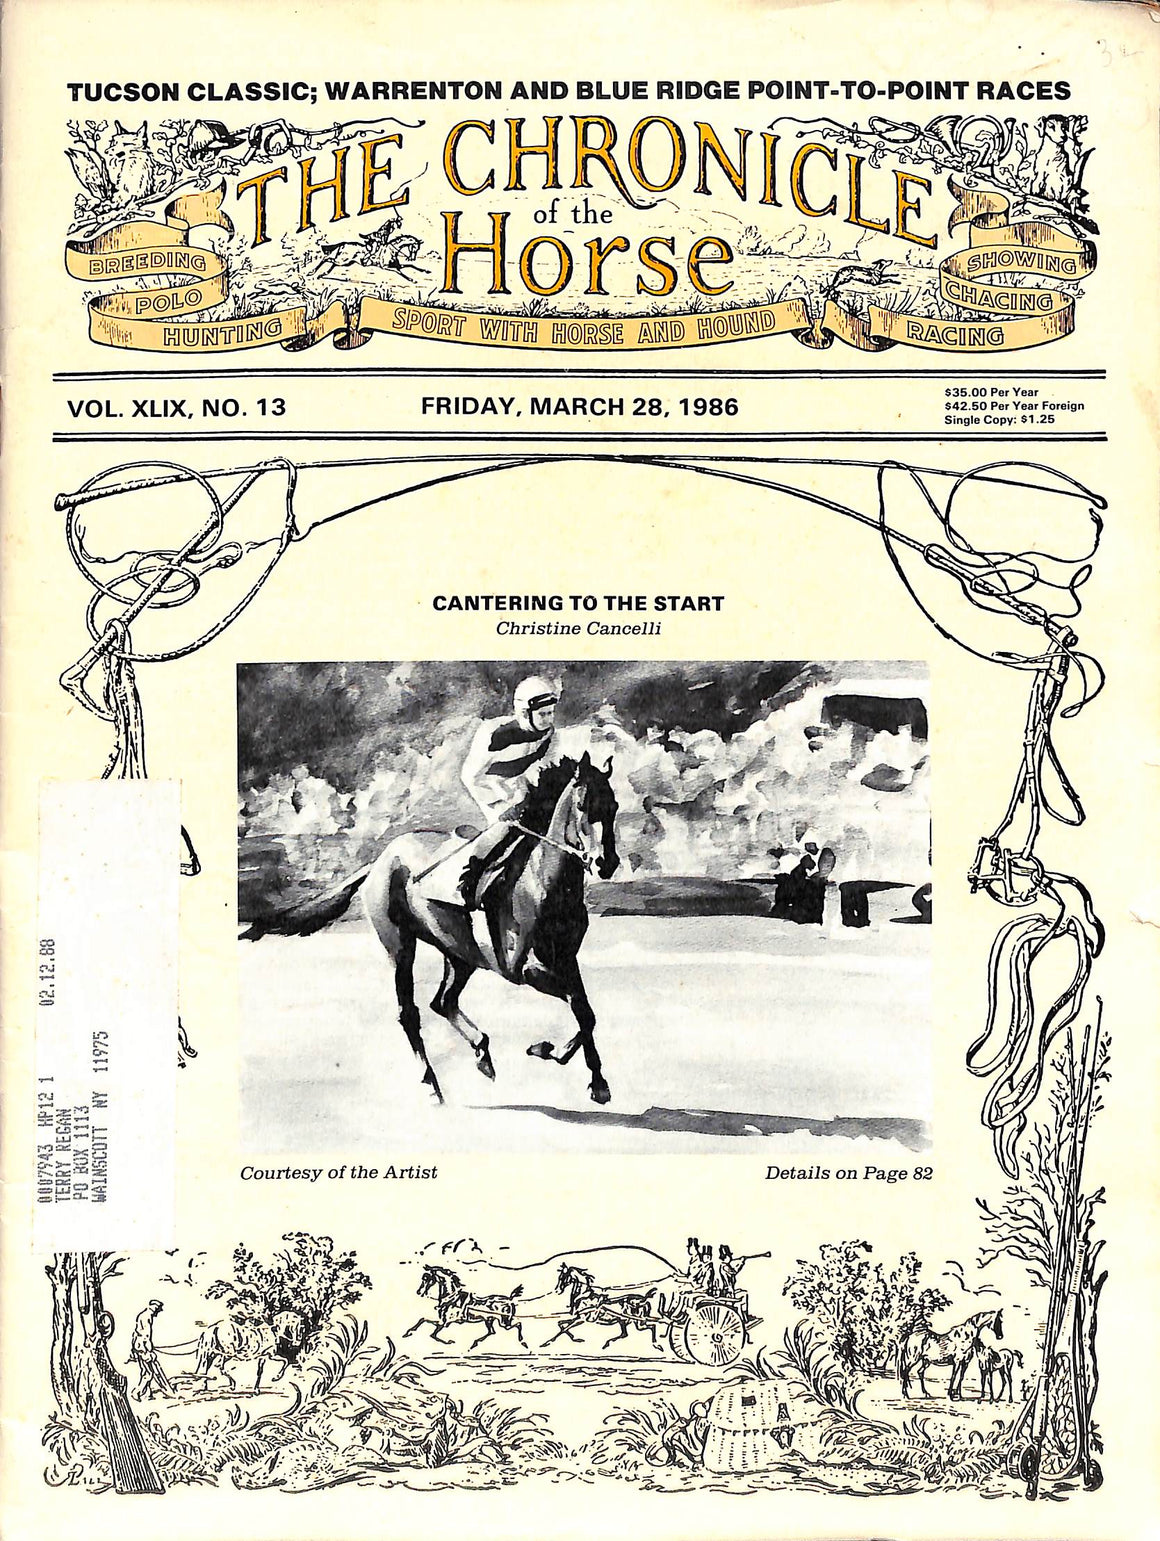 The Chronicle of the Horse: Vol. XLIX, No. 13 - March 28, 1986